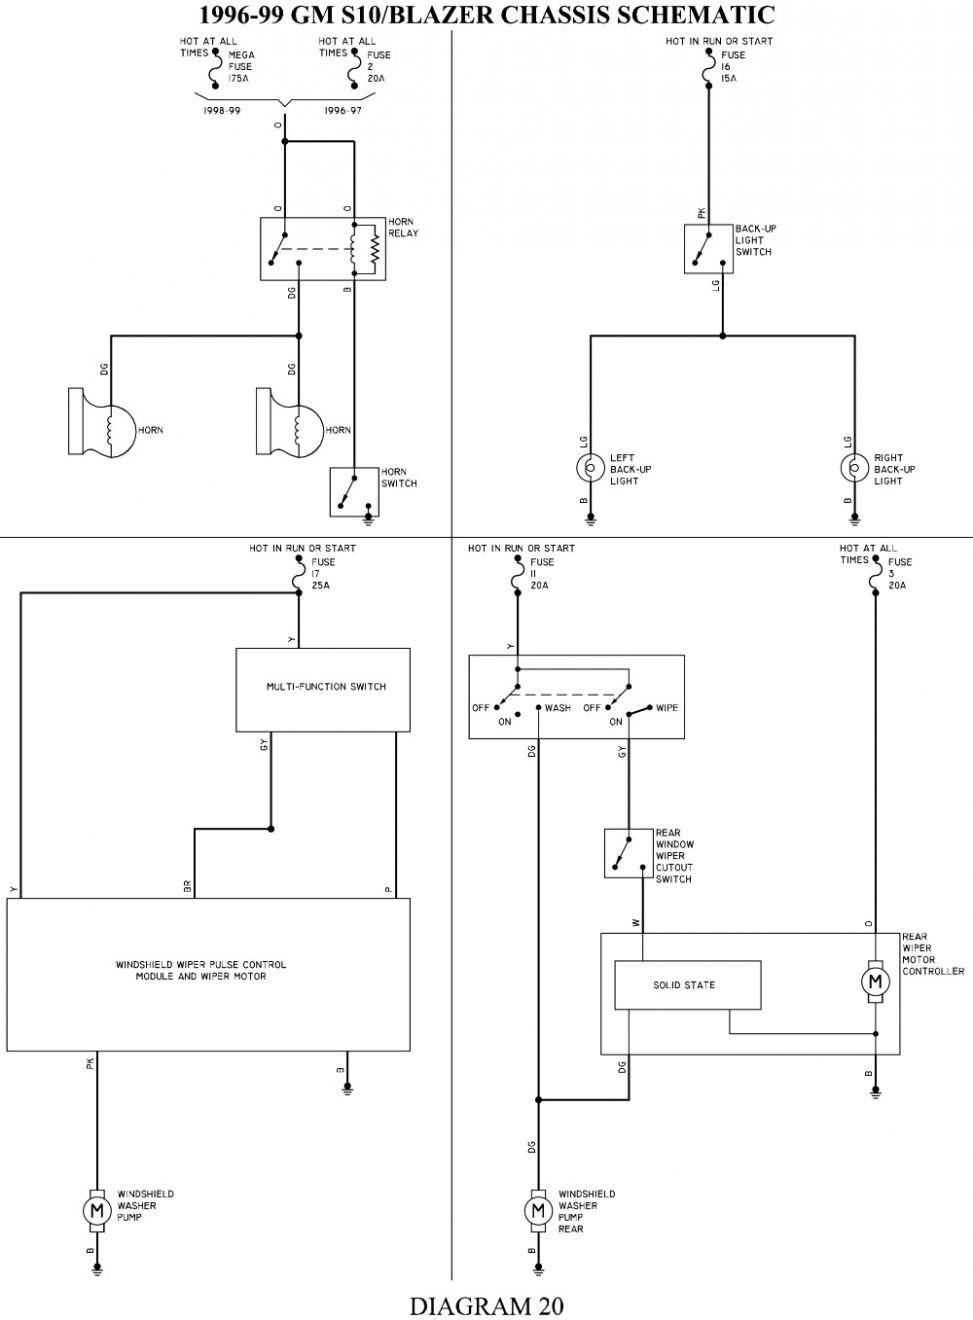 Wiring Diagram 1994 Chevy S 10 Blazer 2003 Suzuki Eiger Wiring Diagram Siosio Aja Bayau Madfish It